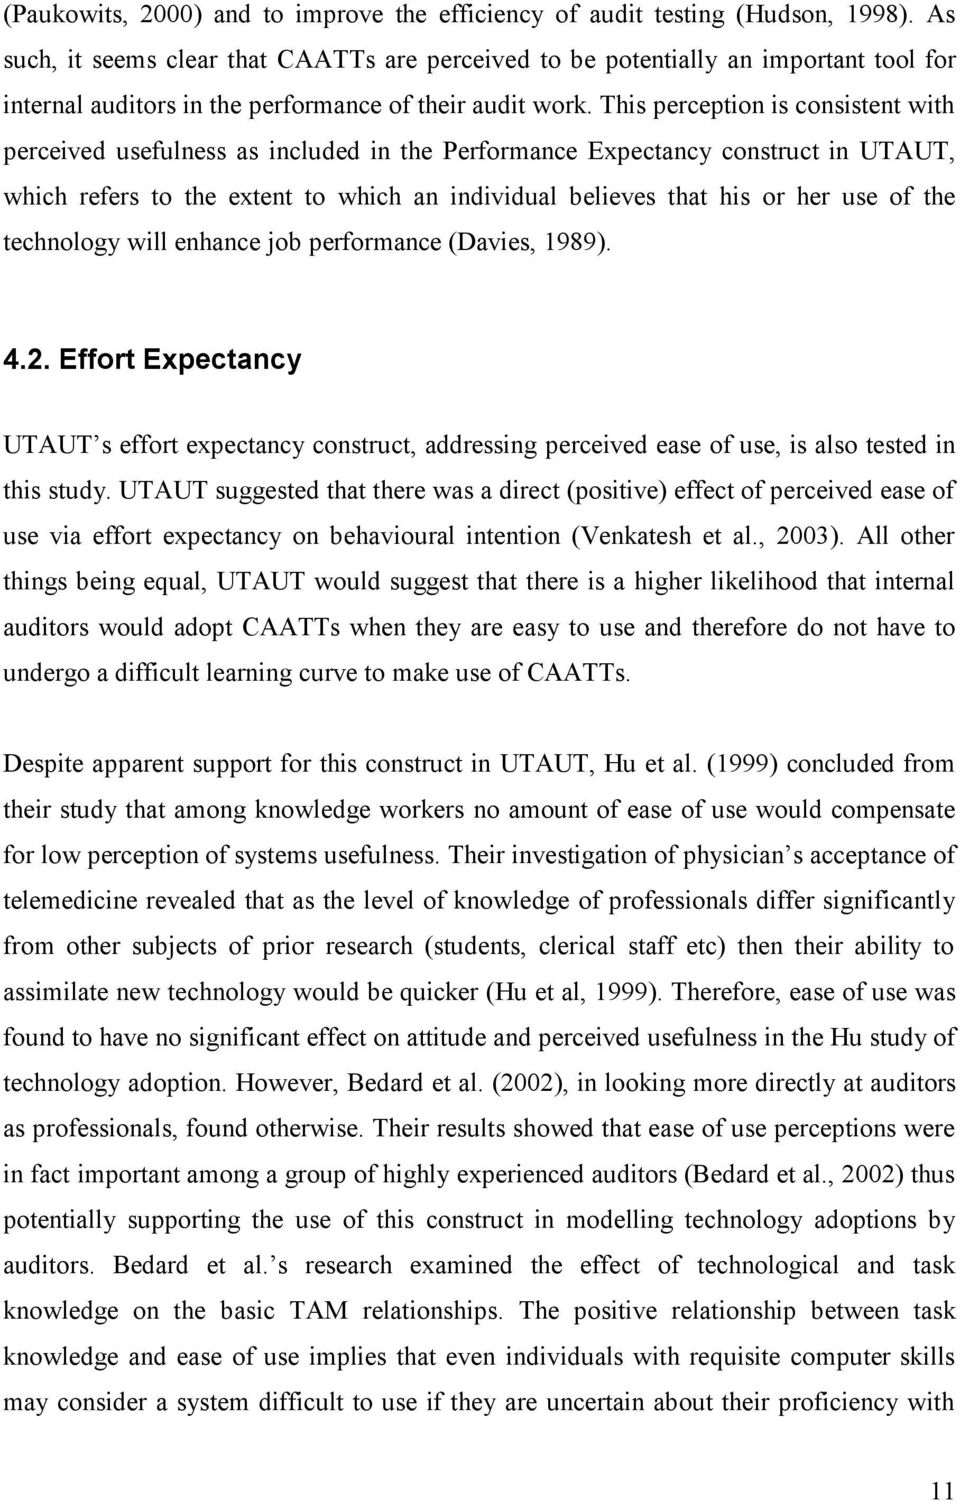 This perception is consistent with perceived usefulness as included in the Performance Expectancy construct in UTAUT, which refers to the extent to which an individual believes that his or her use of